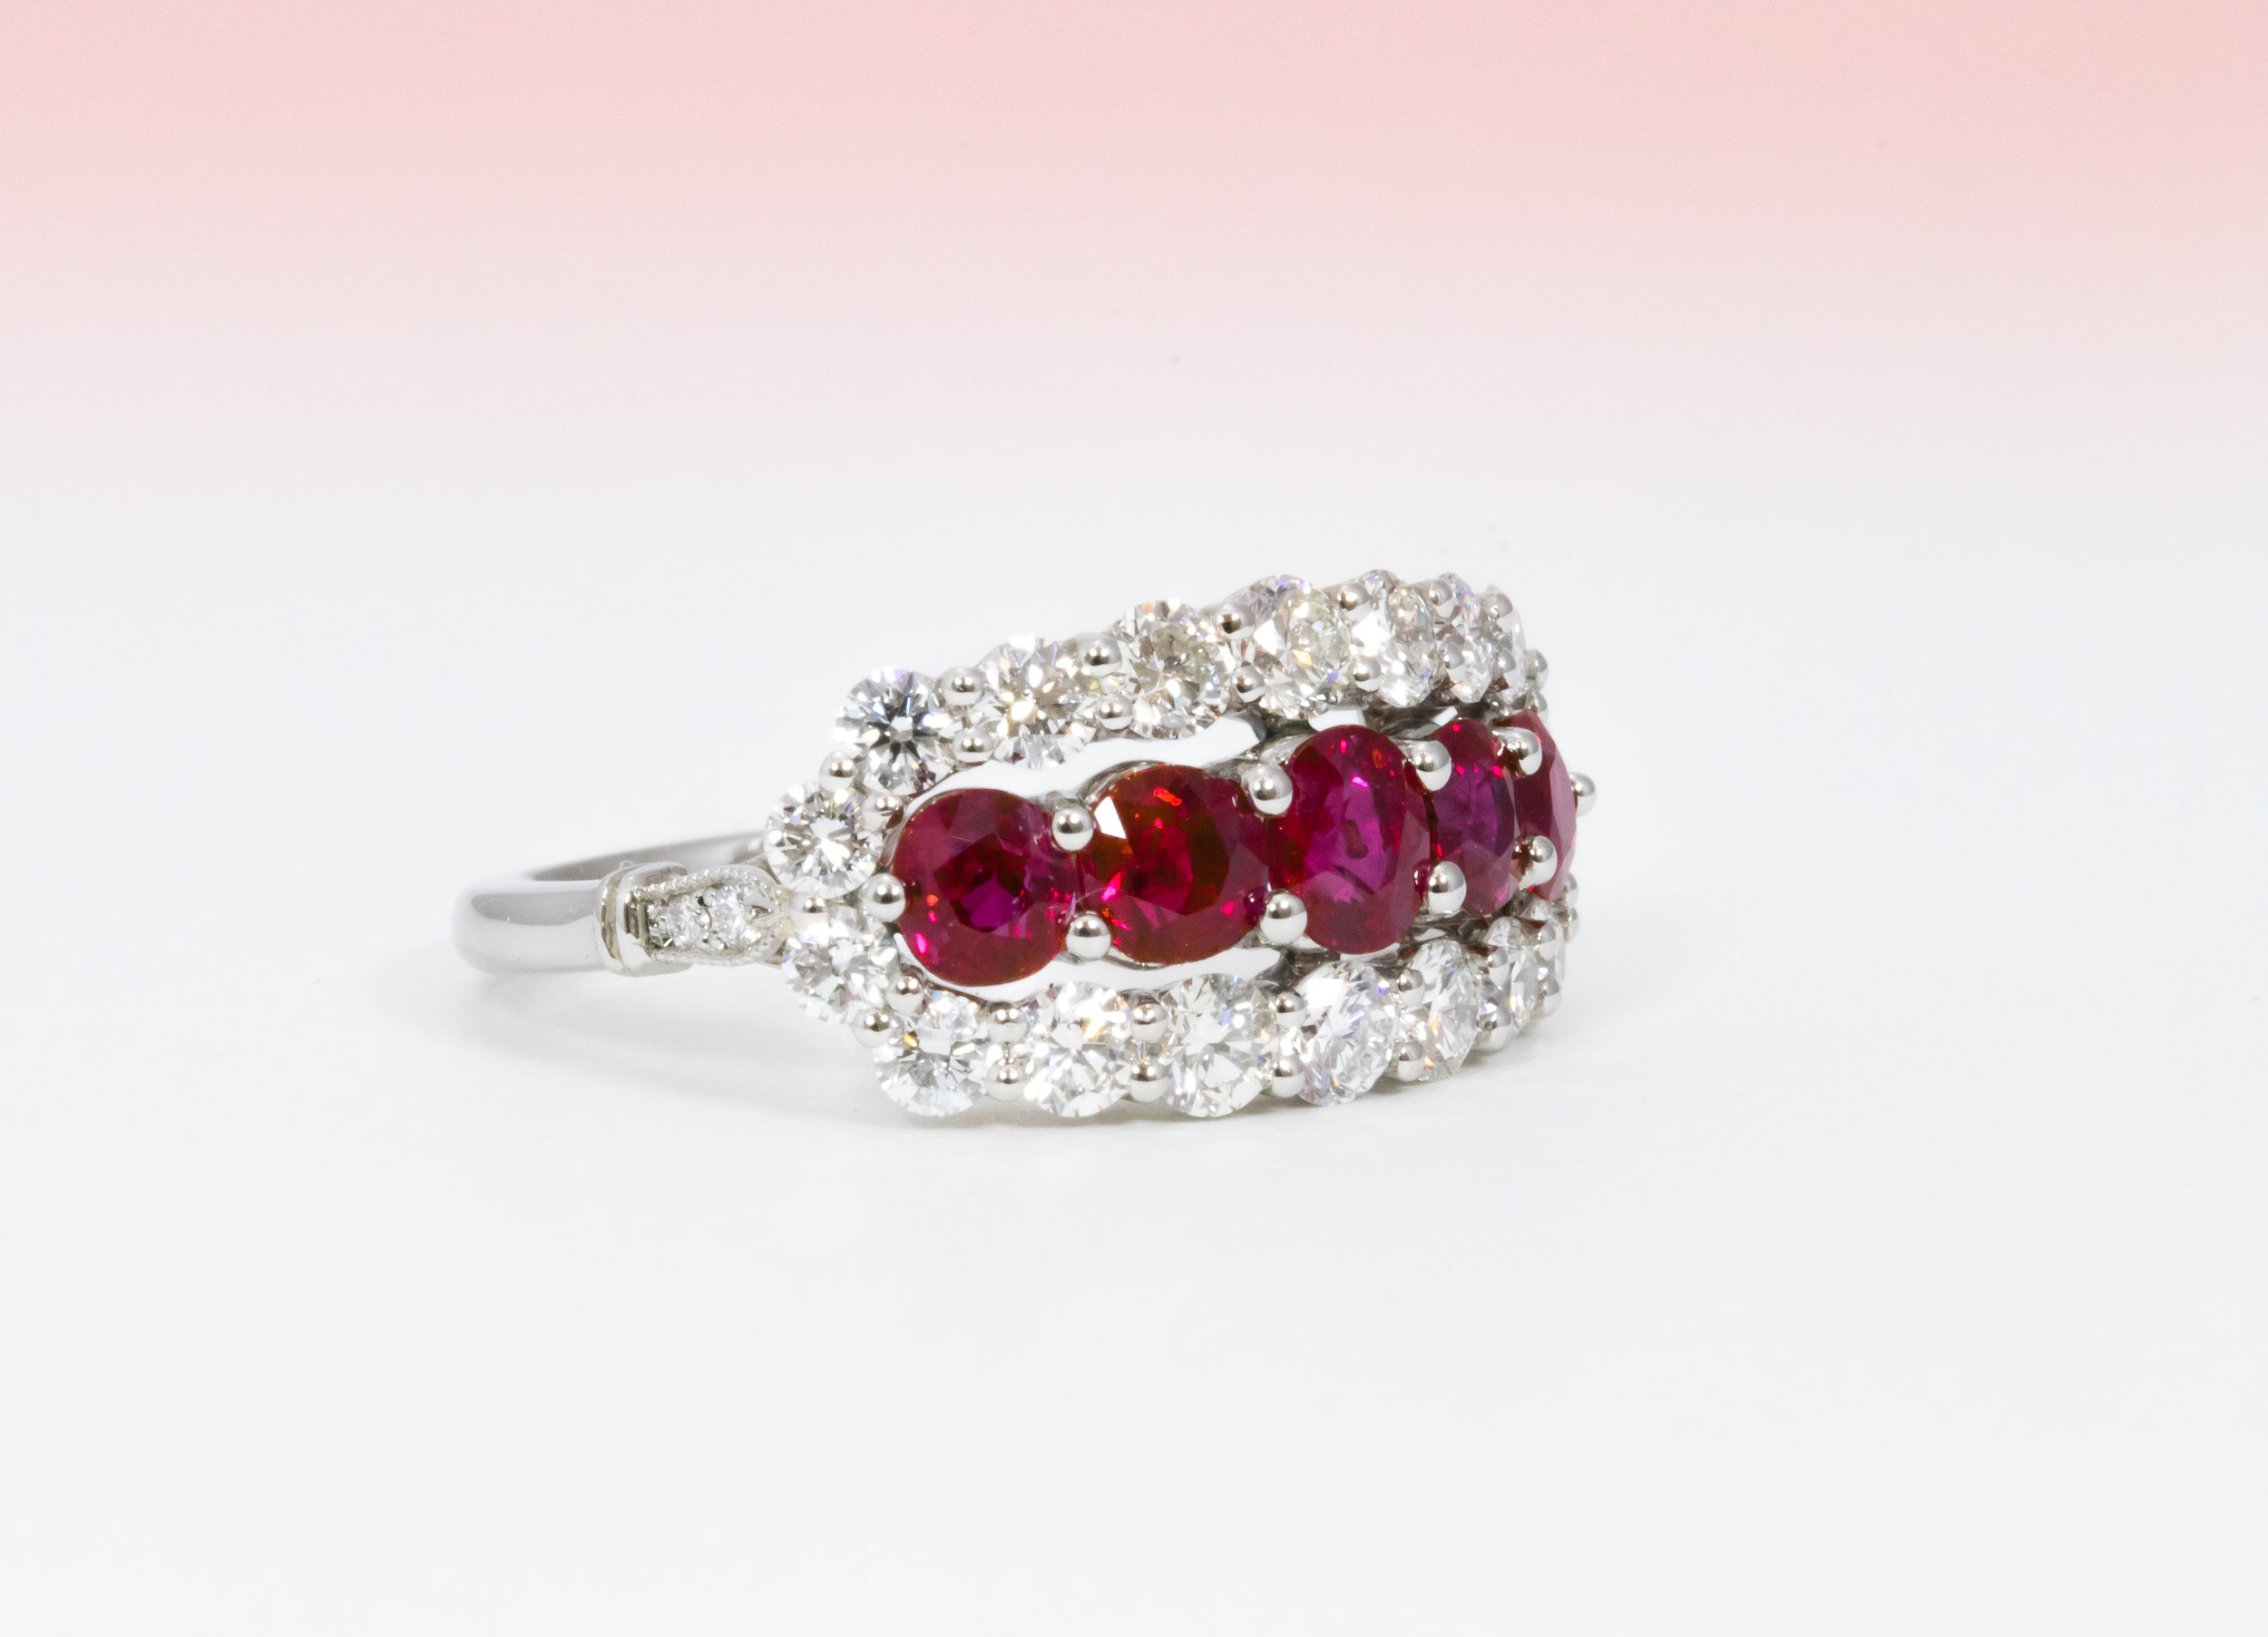 Platinum mounted Burmese ruby and diamond half hoop ring. Made in Chichester, England.